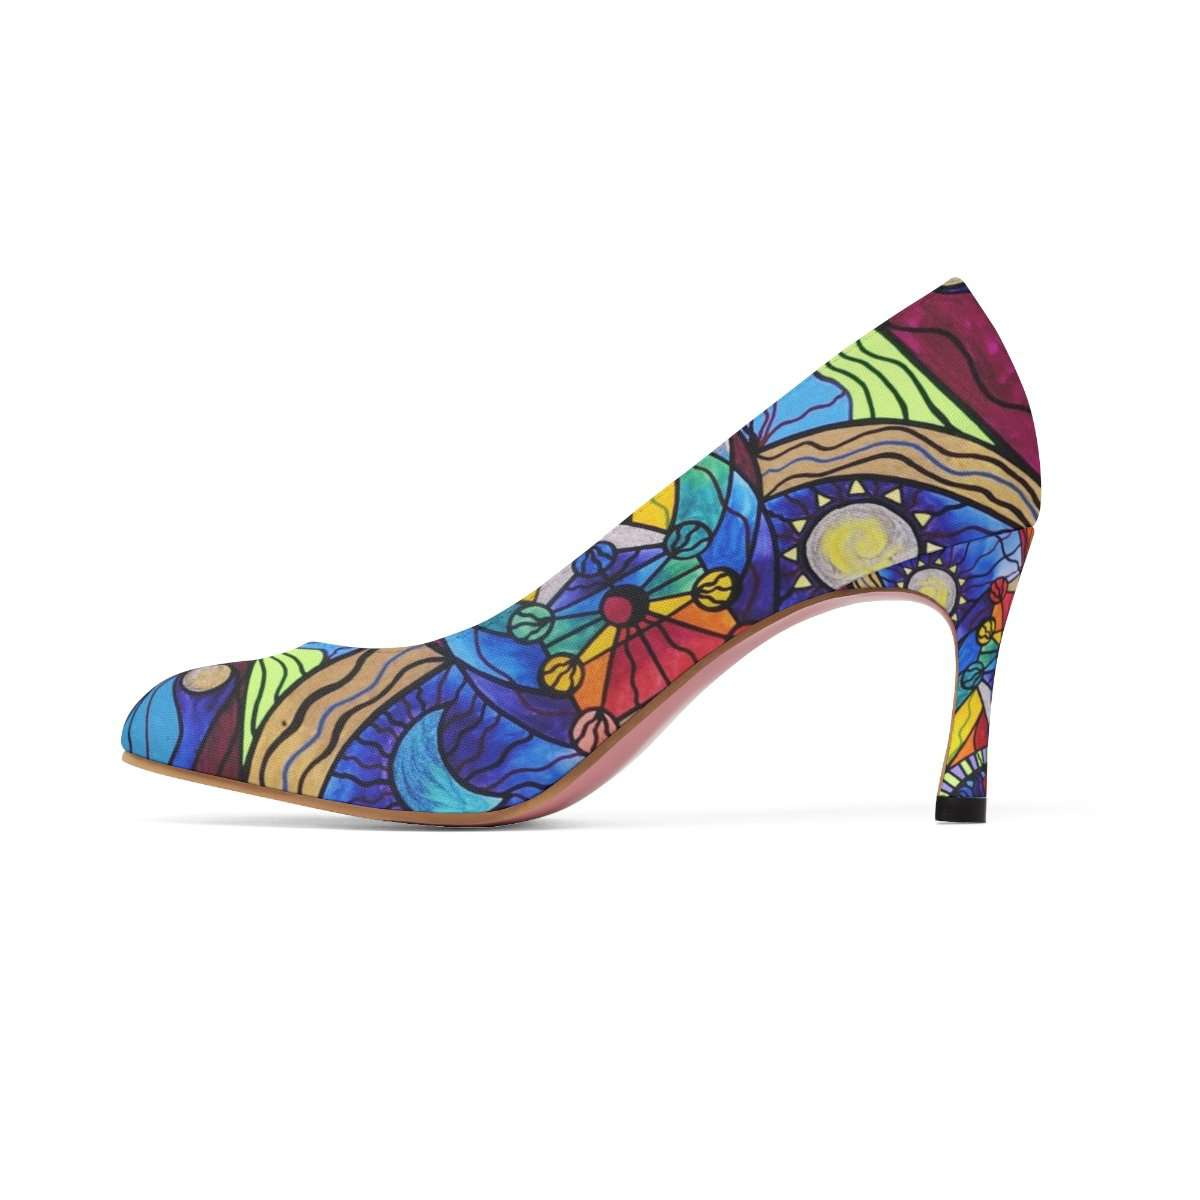 Spiritual Guide - Women's High Heels